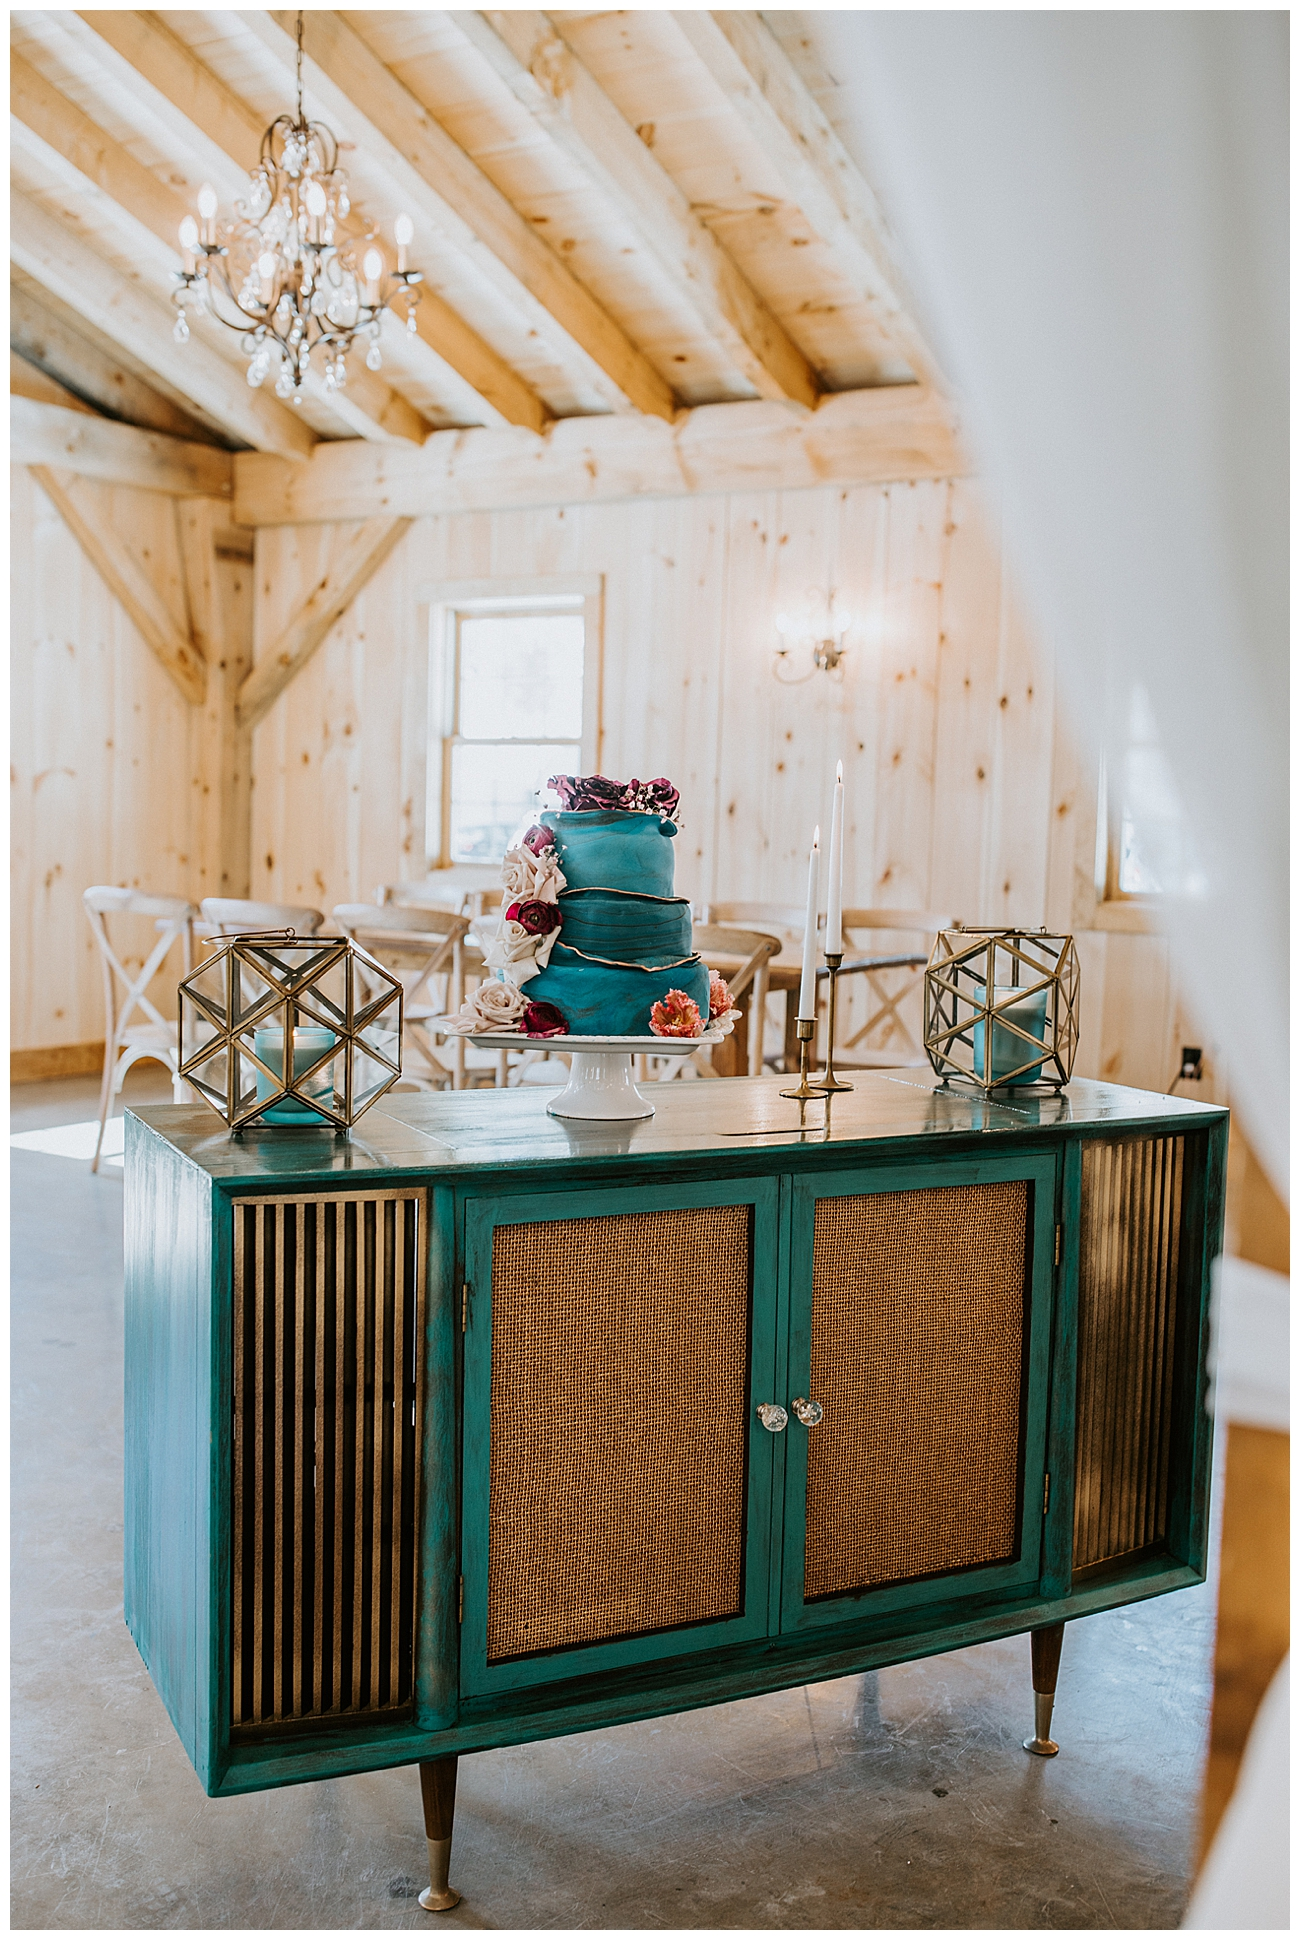 teal-and-wooden-cake-stand